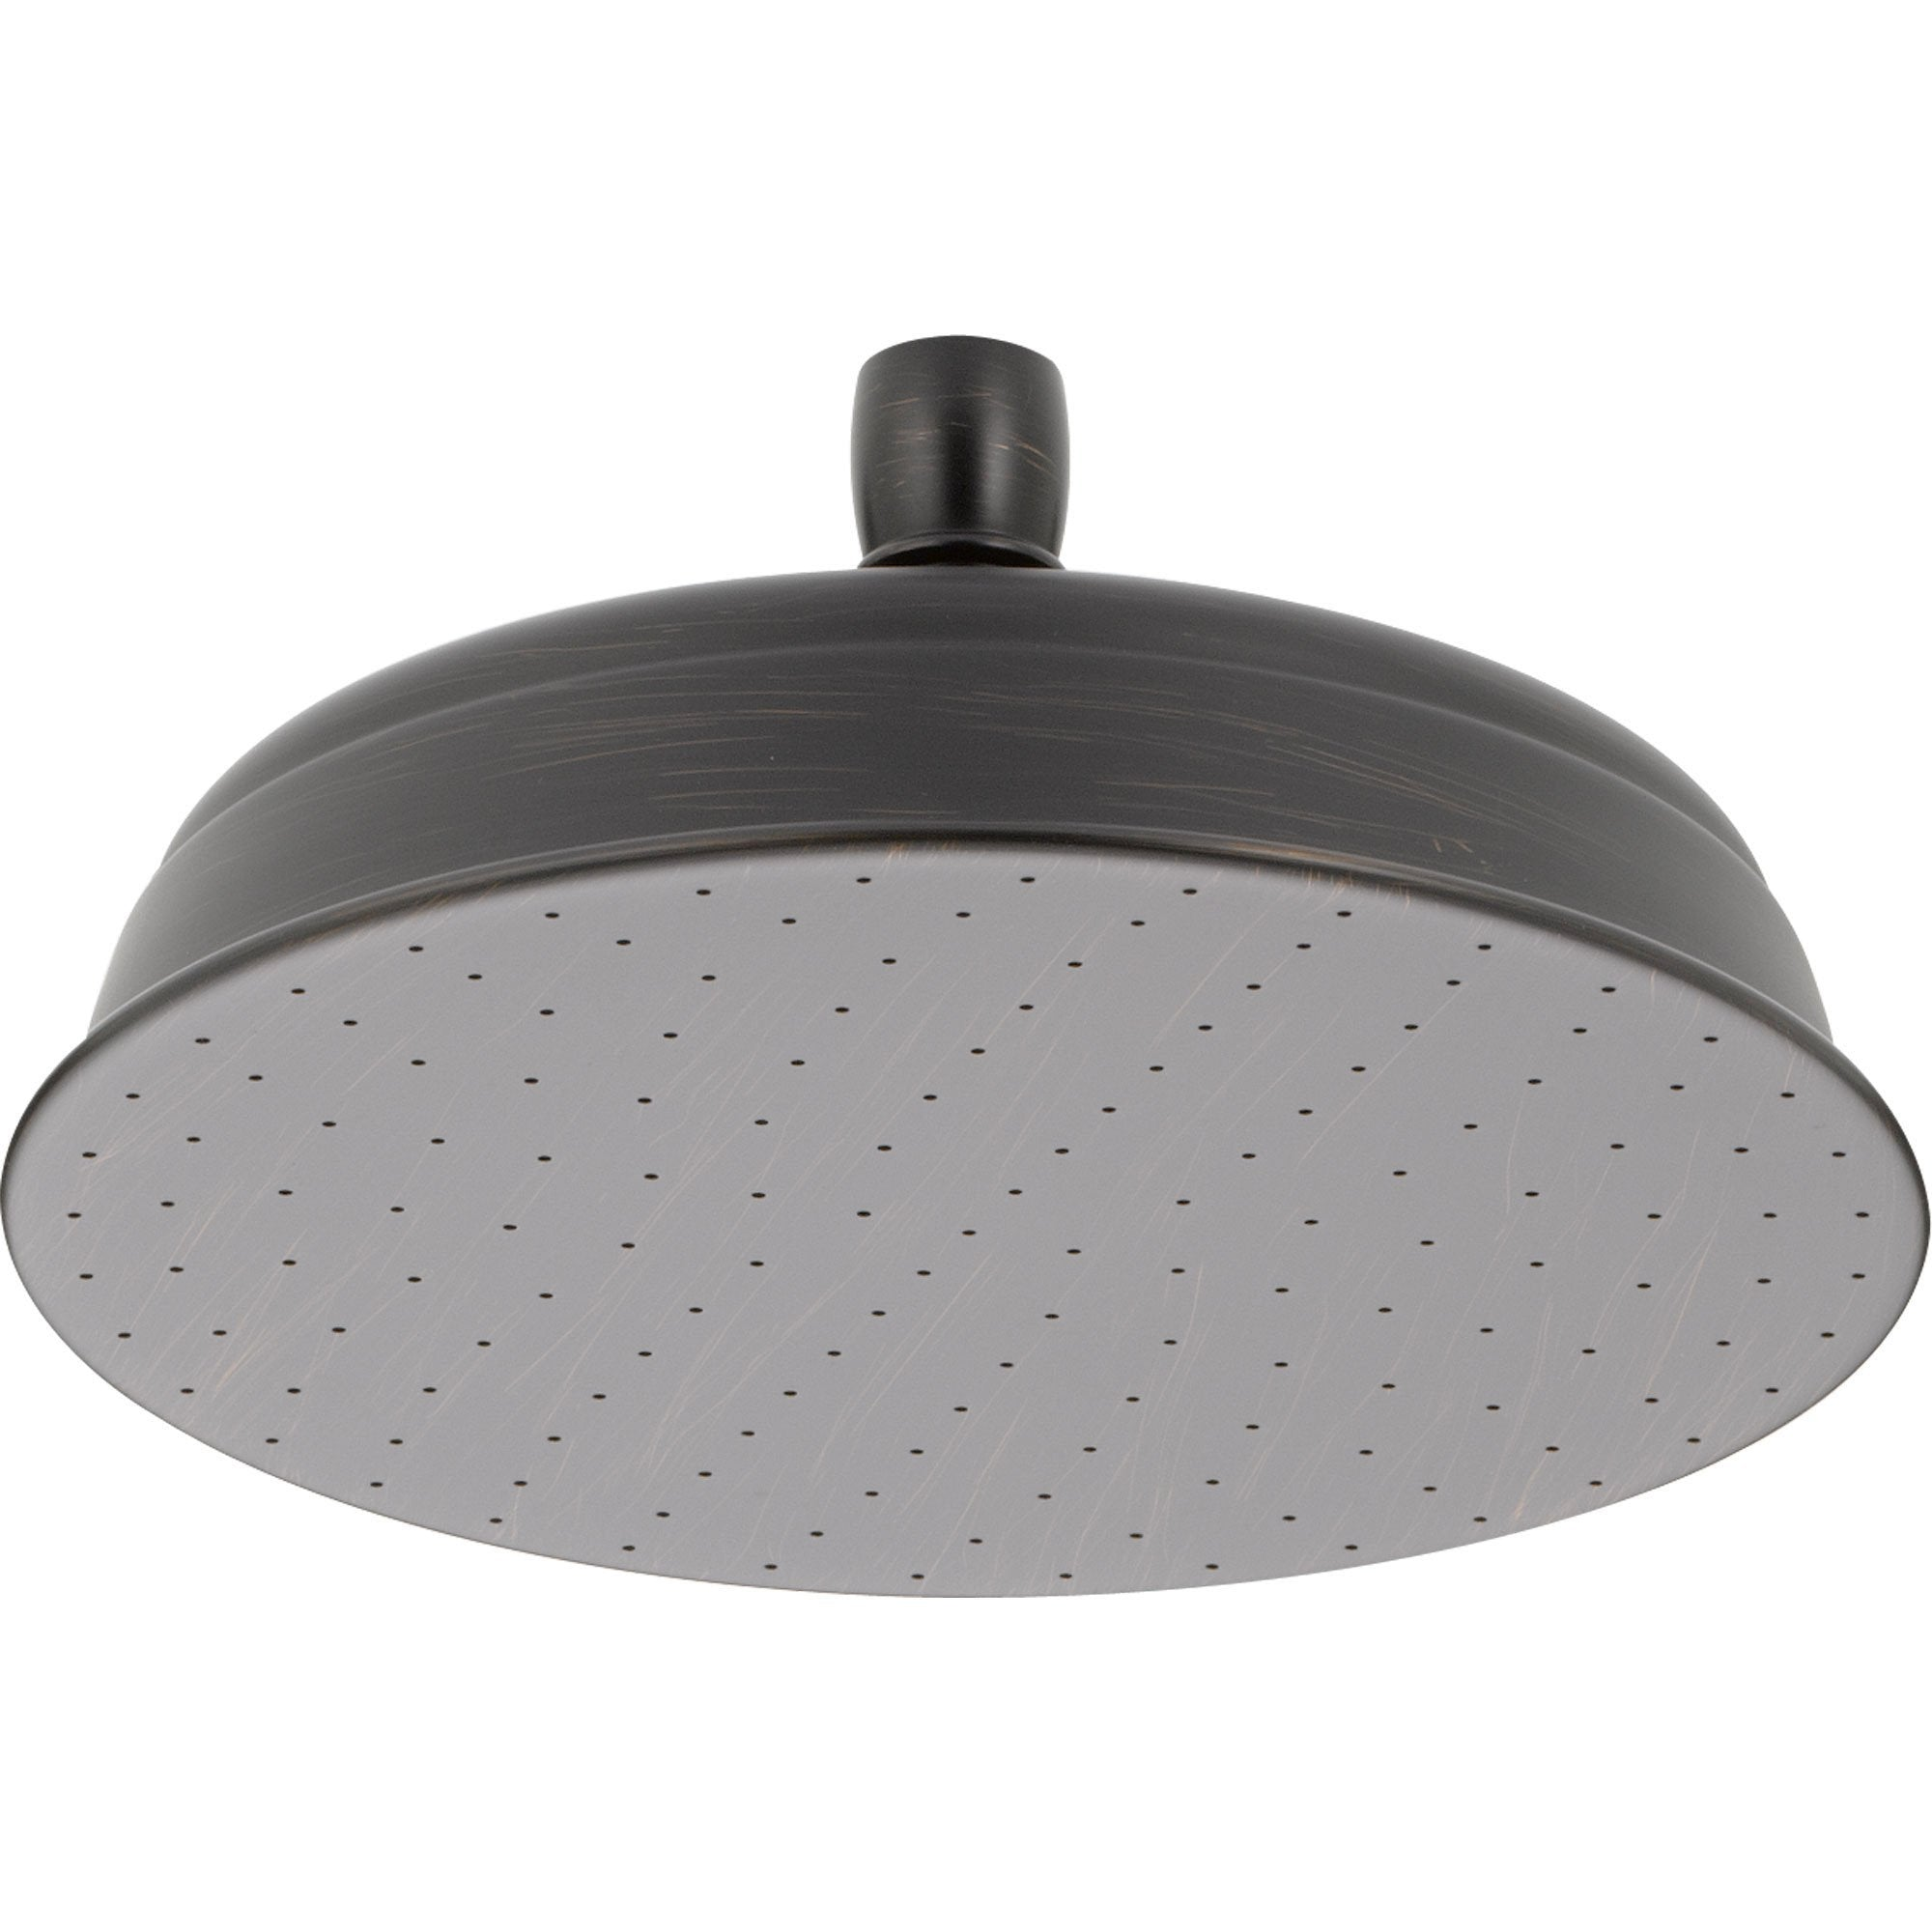 "Delta 1-Spray 2.5 gpm Large 8-1/2"" Raincan Showerhead in Venetian Bronze 561166"